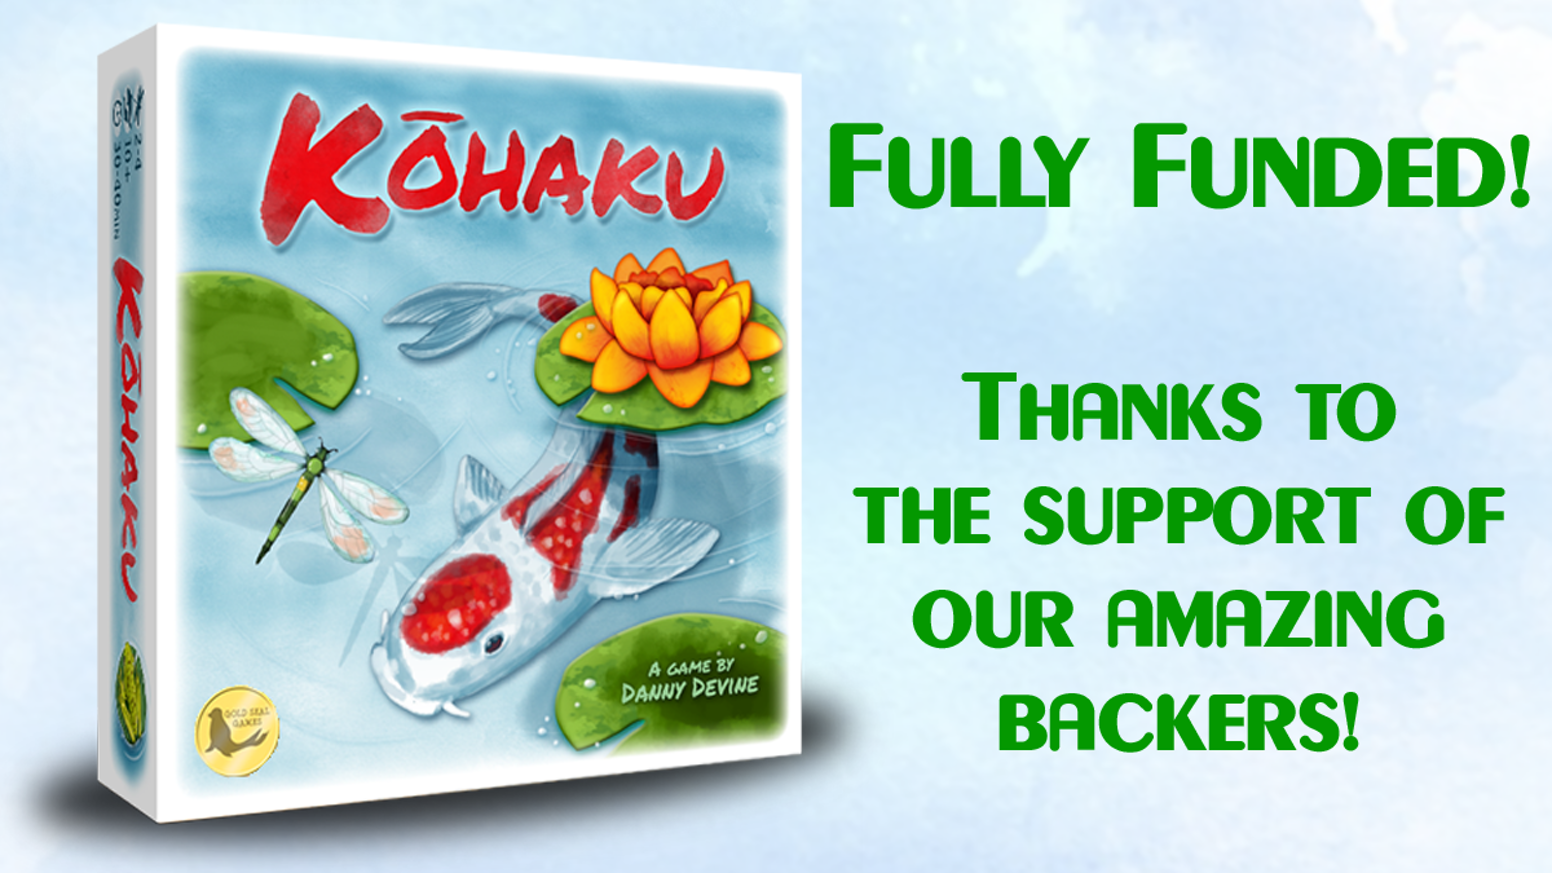 Create the most beautiful koi pond! A peaceful tile-laying game for 1-4 players by Danny Devine.